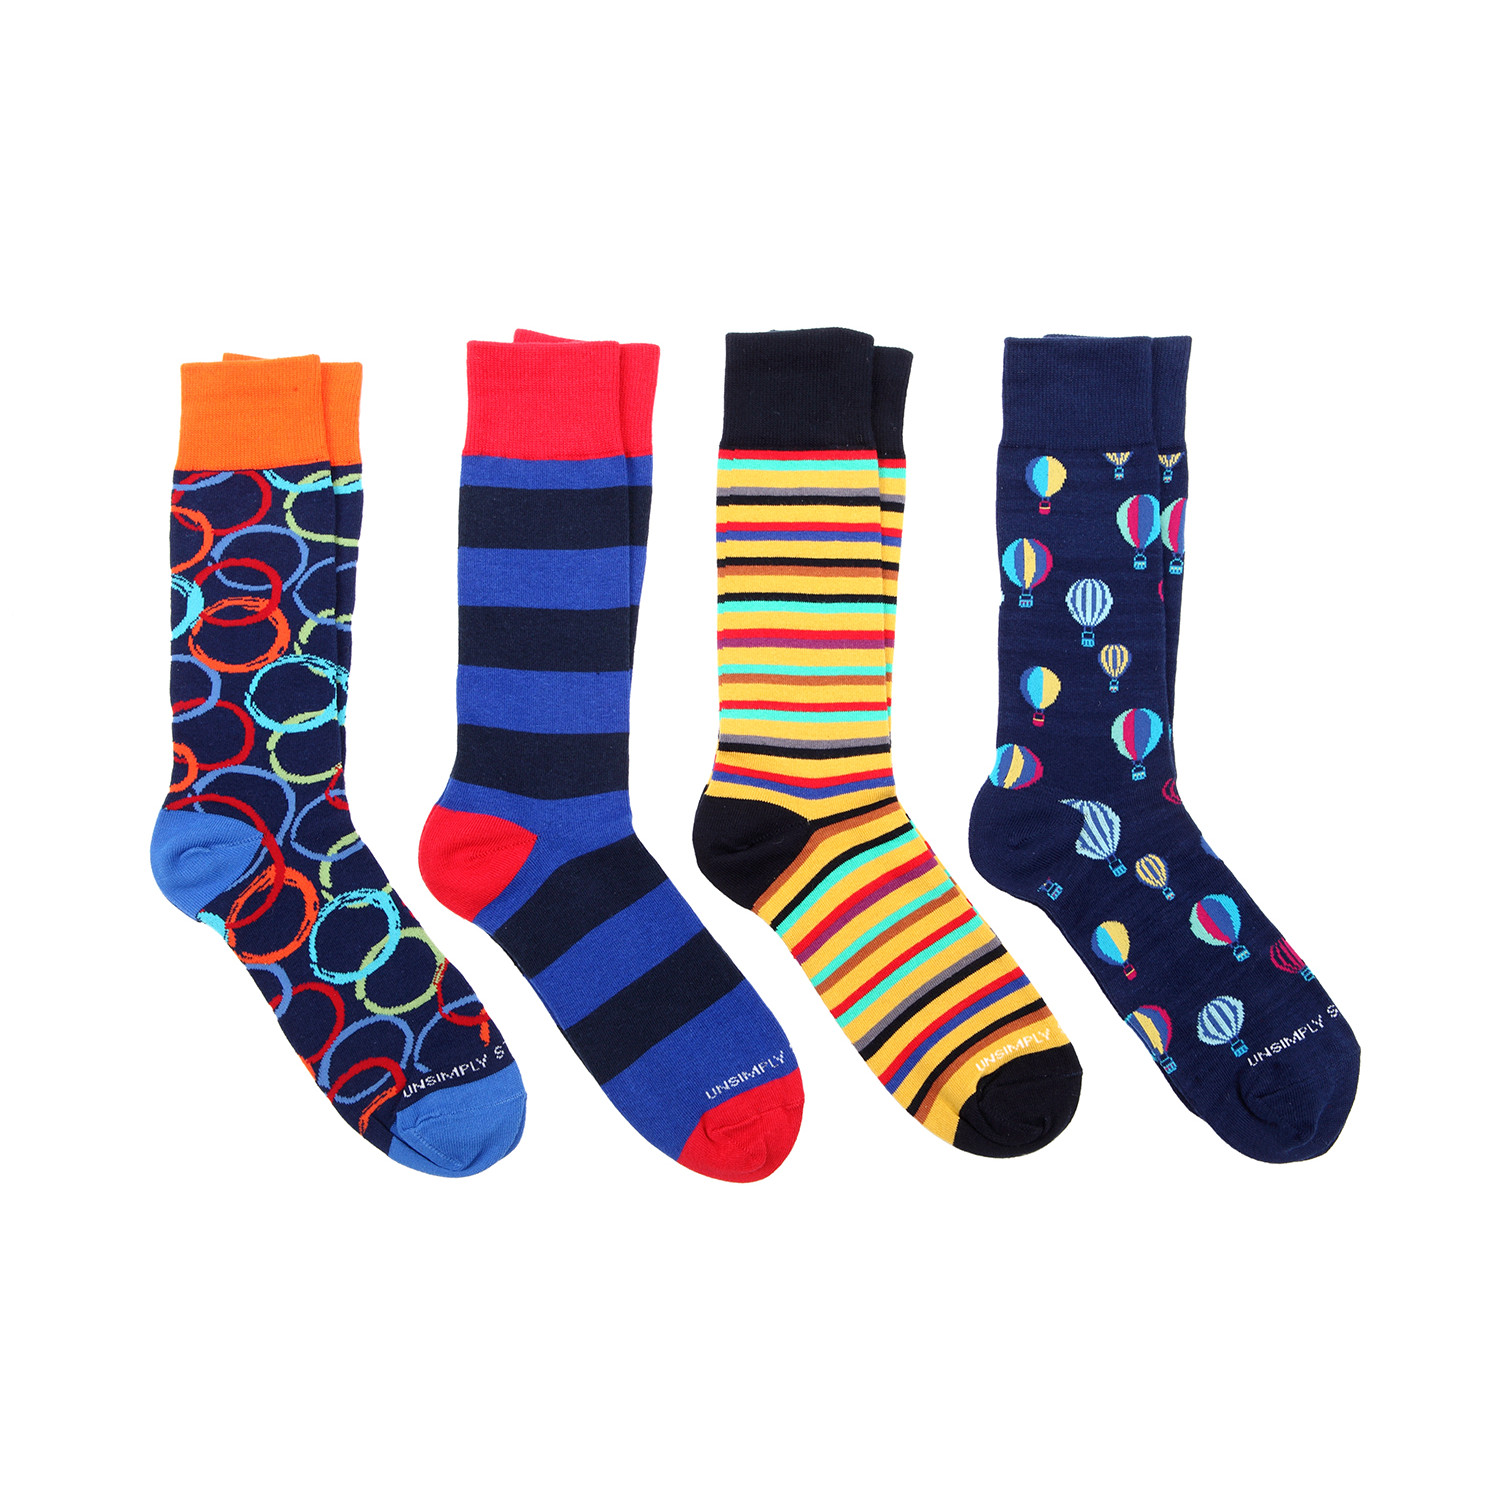 Dress socks balloons pack of 4 unsimply stitched touch of